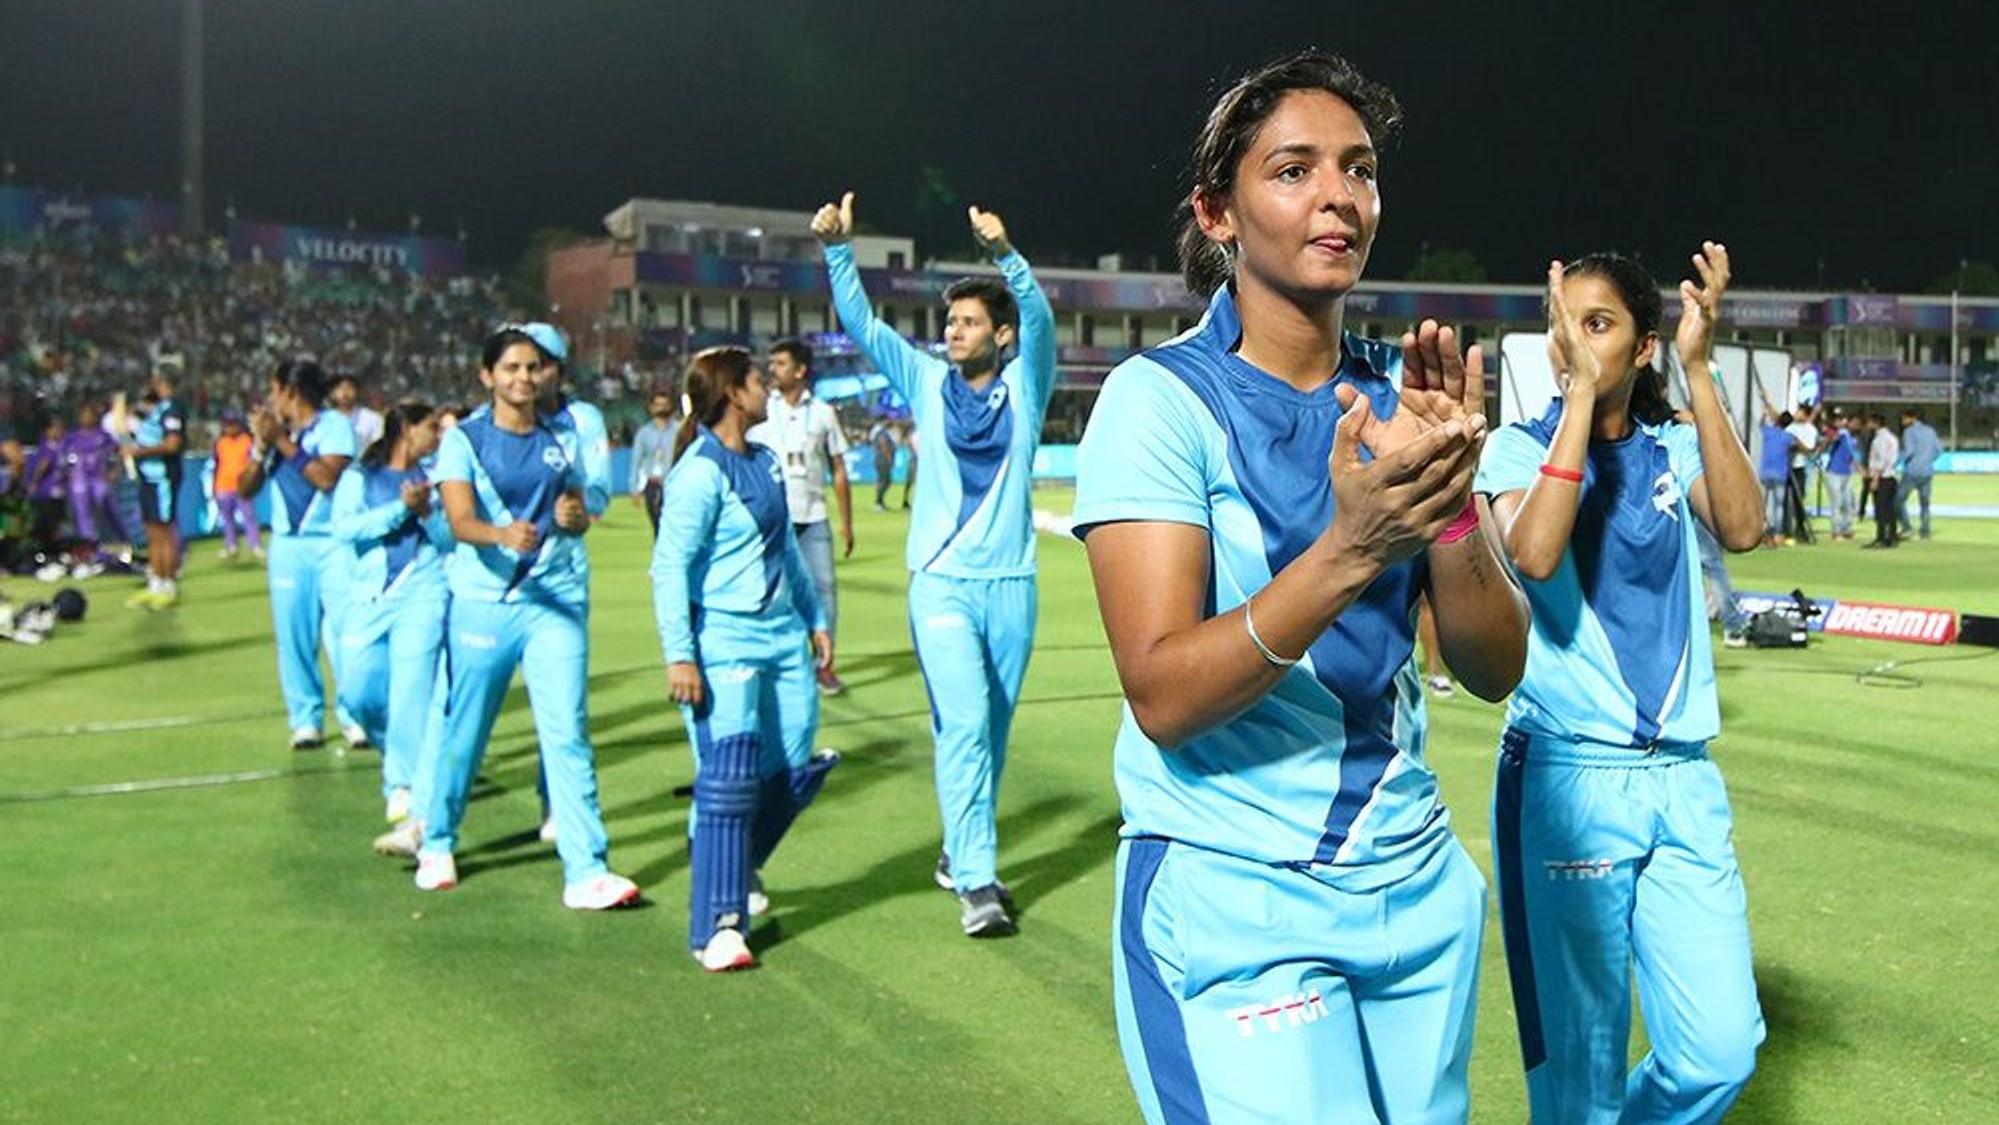 Important for us to carry the momentum forward: Harmanpreet Kaur on WIPL's clash with WBBL